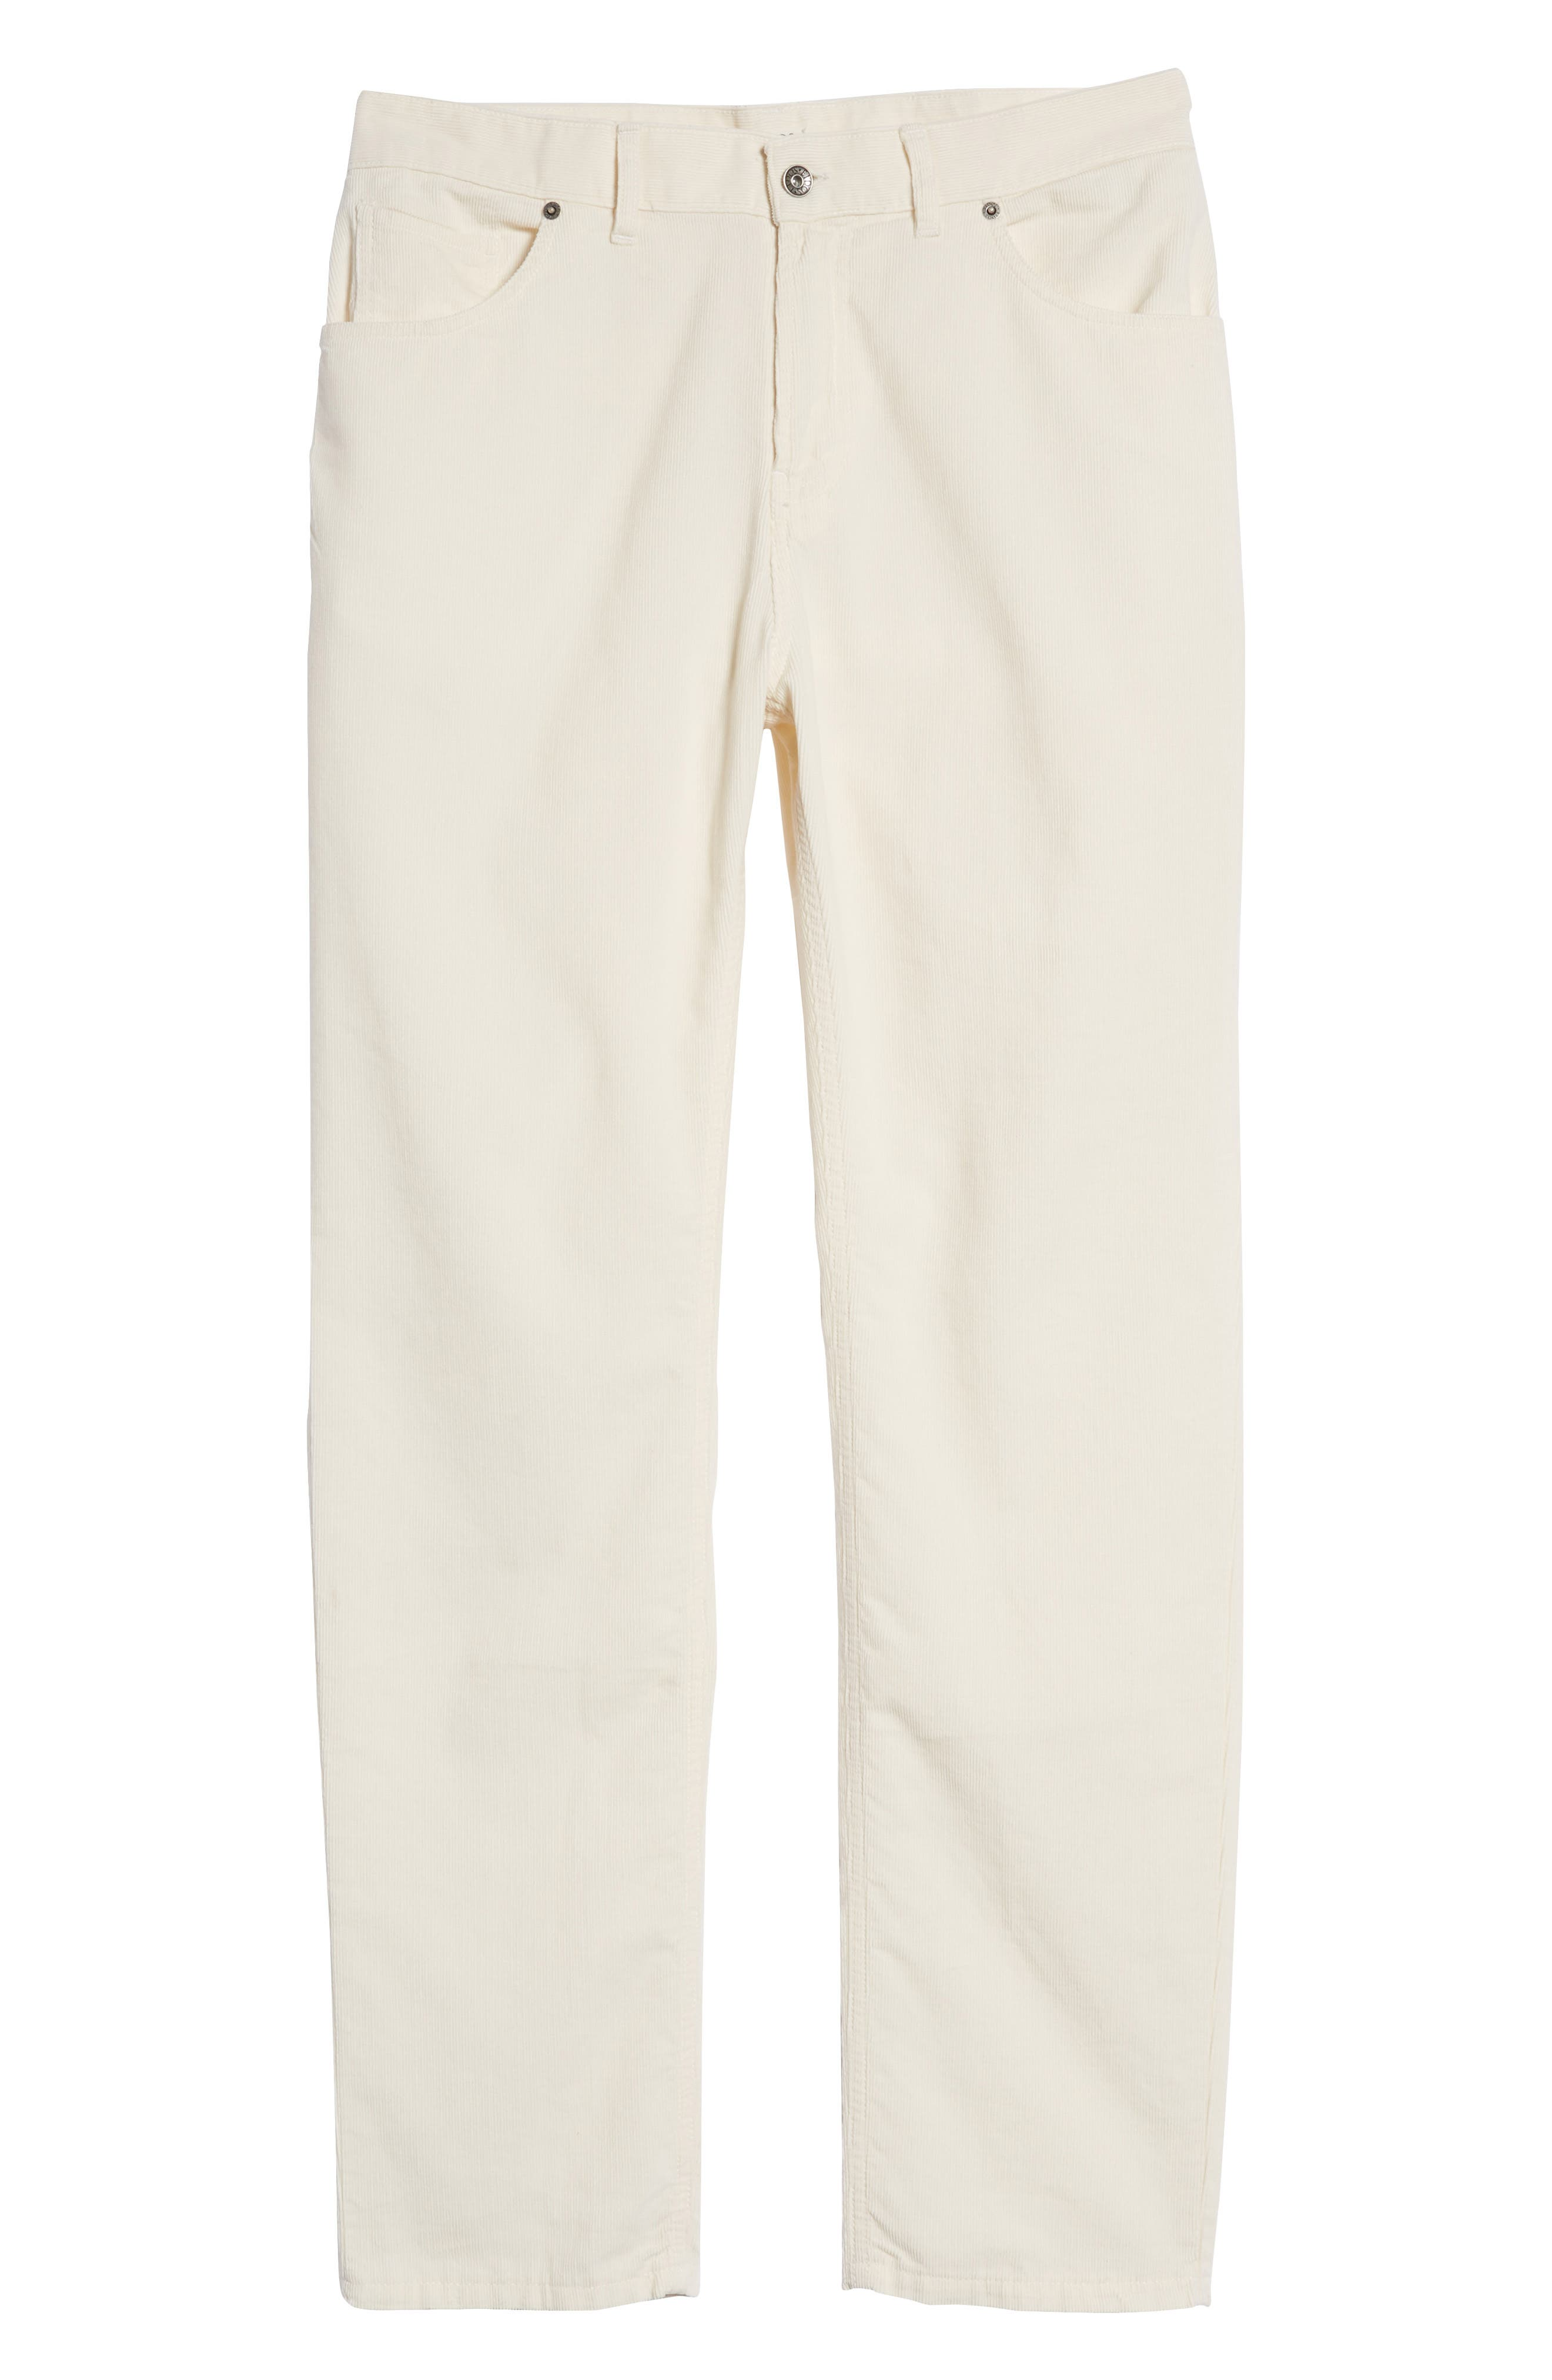 Q Cord Trousers,                             Alternate thumbnail 6, color,                             Natural